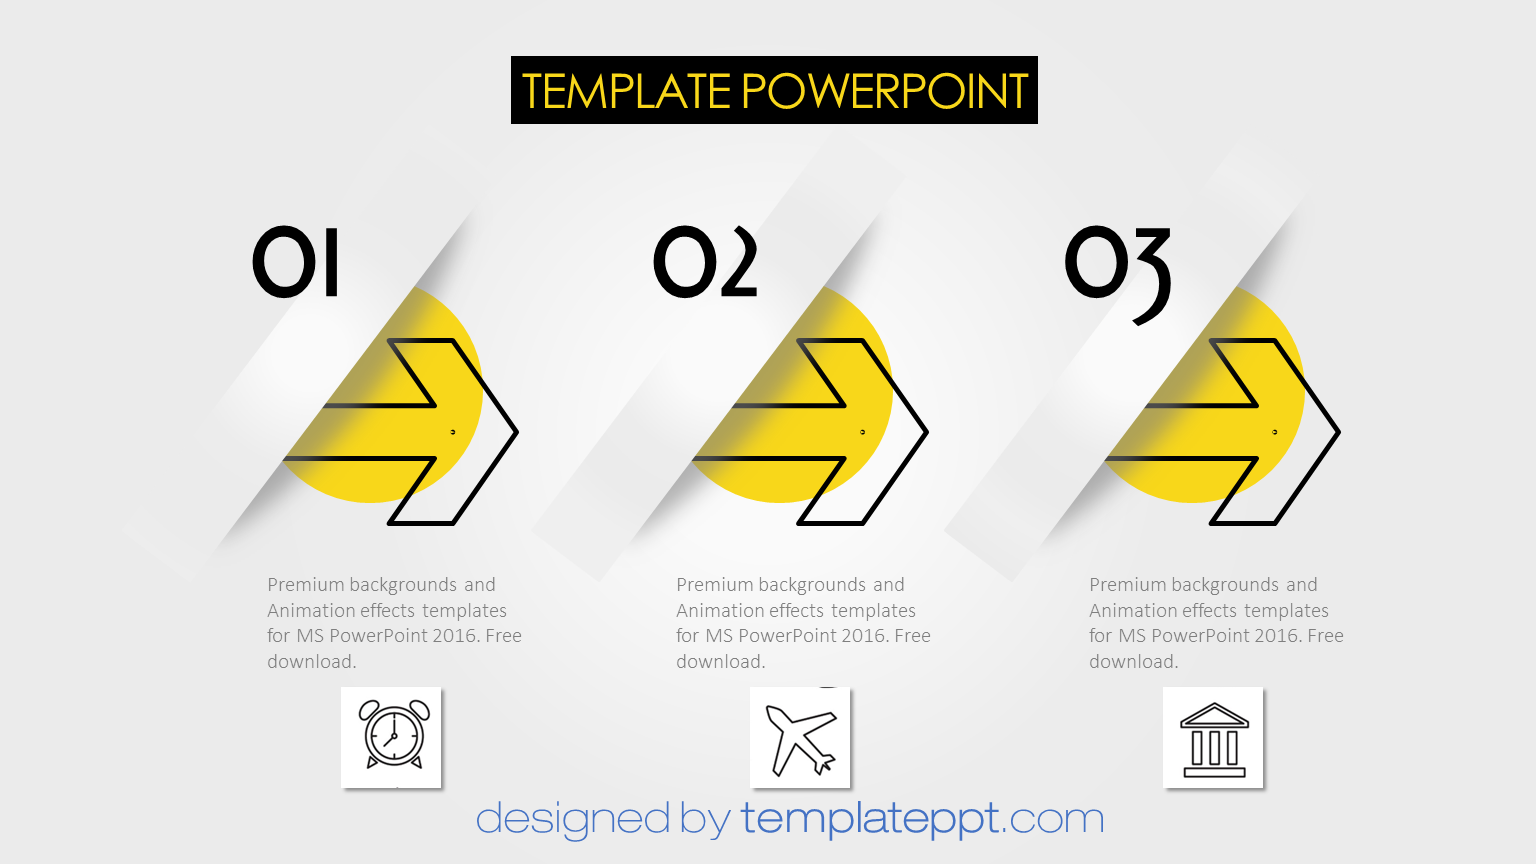 Powerpoint Templates Free Download 2016 - Animated PNG For Ppt Free Download